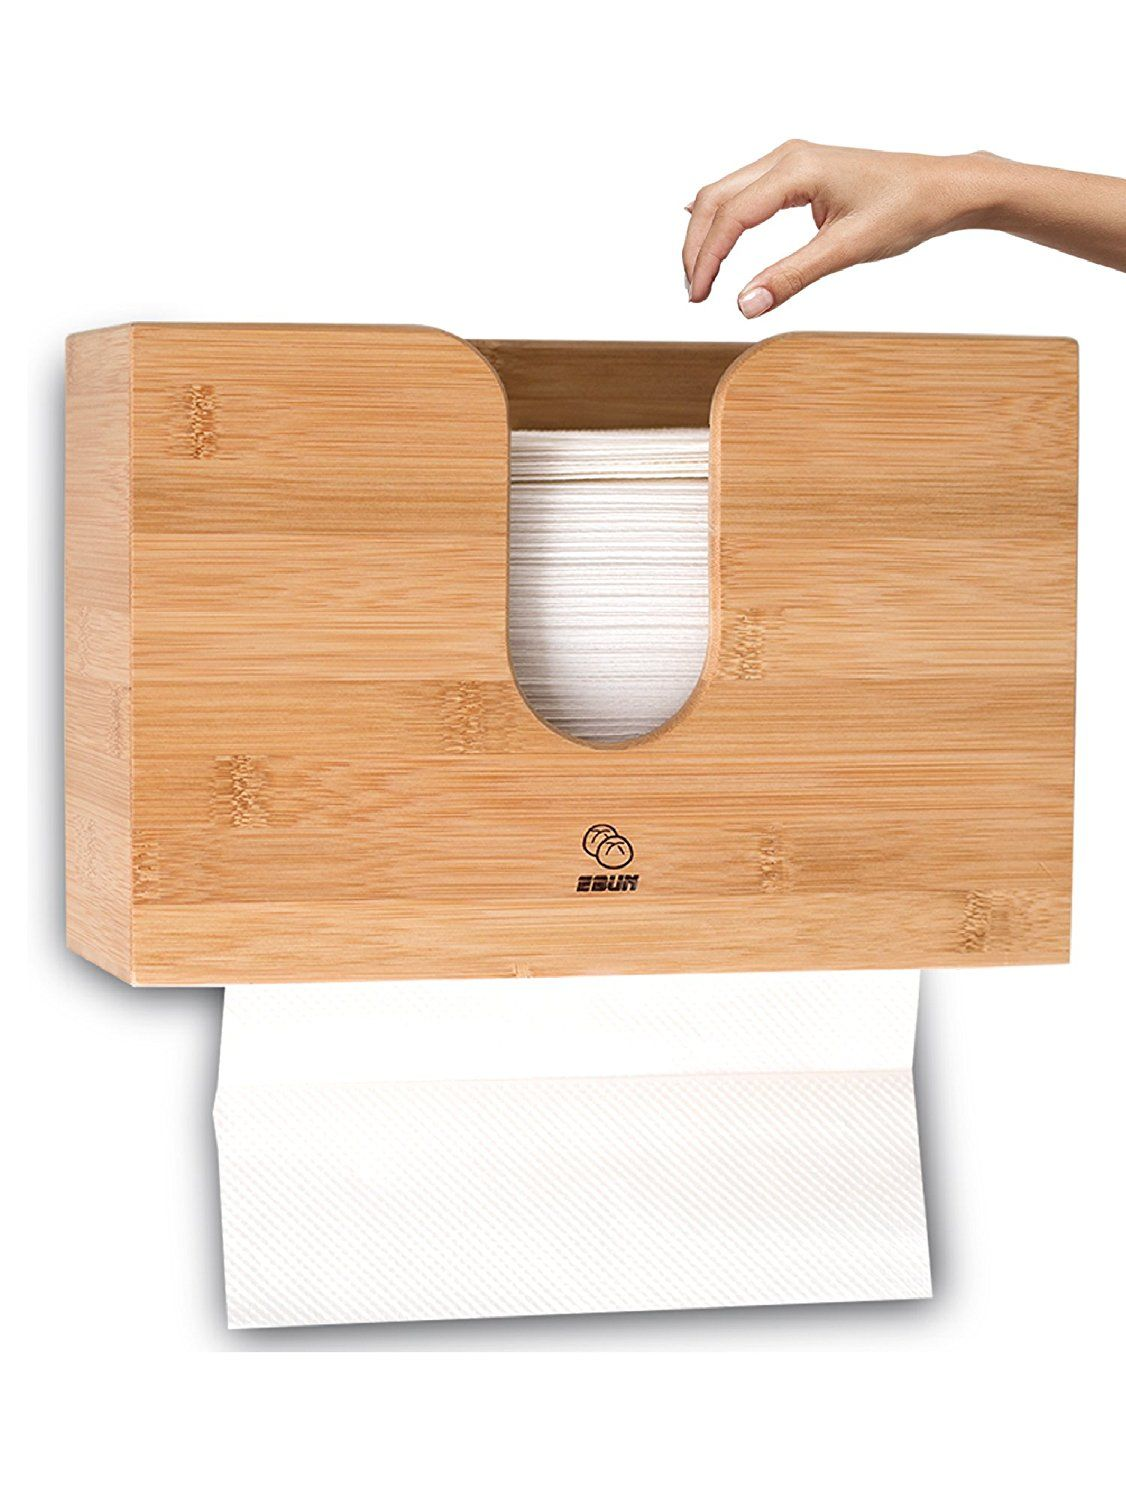 Wall Mount Paper Towel Dispensers Bamboo Paper Towel Dispenser For Kitchen Bathroom Wall Mount